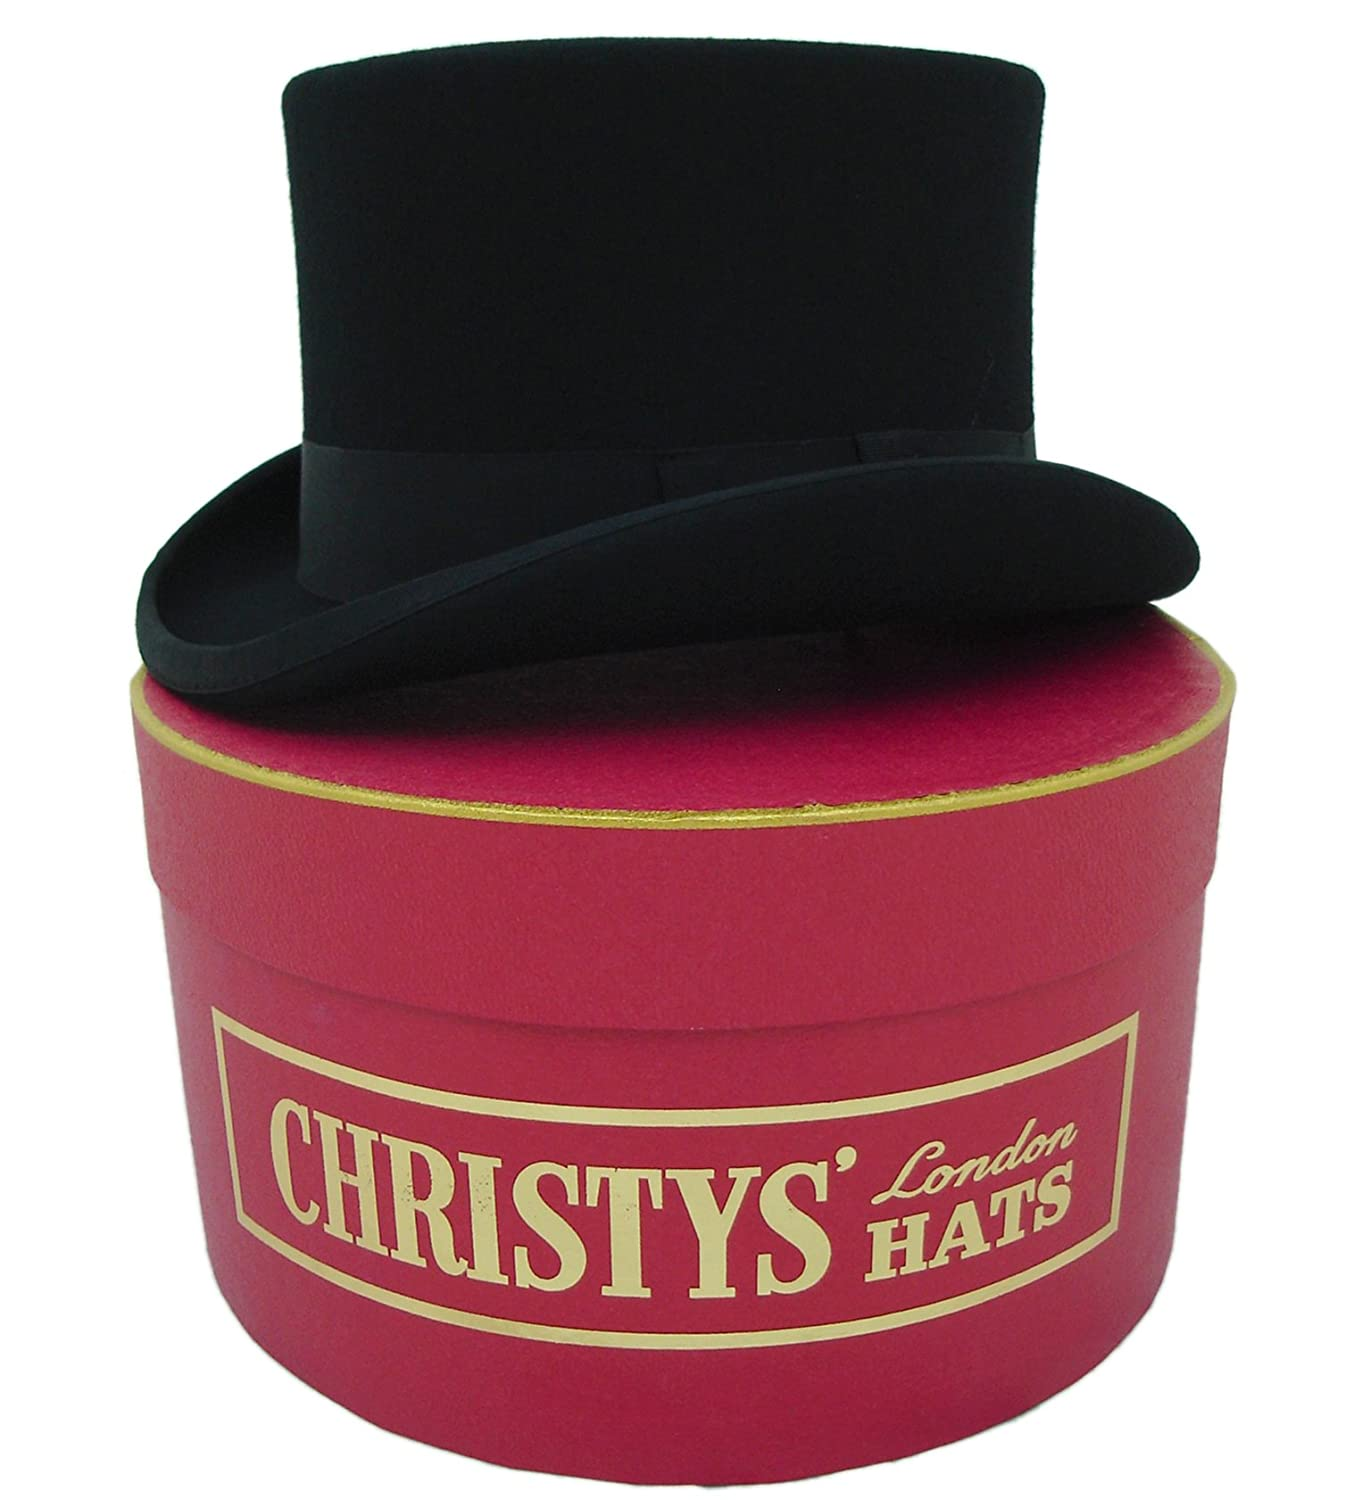 Christys of London Top Hat and Hat Box (57cm Medium)